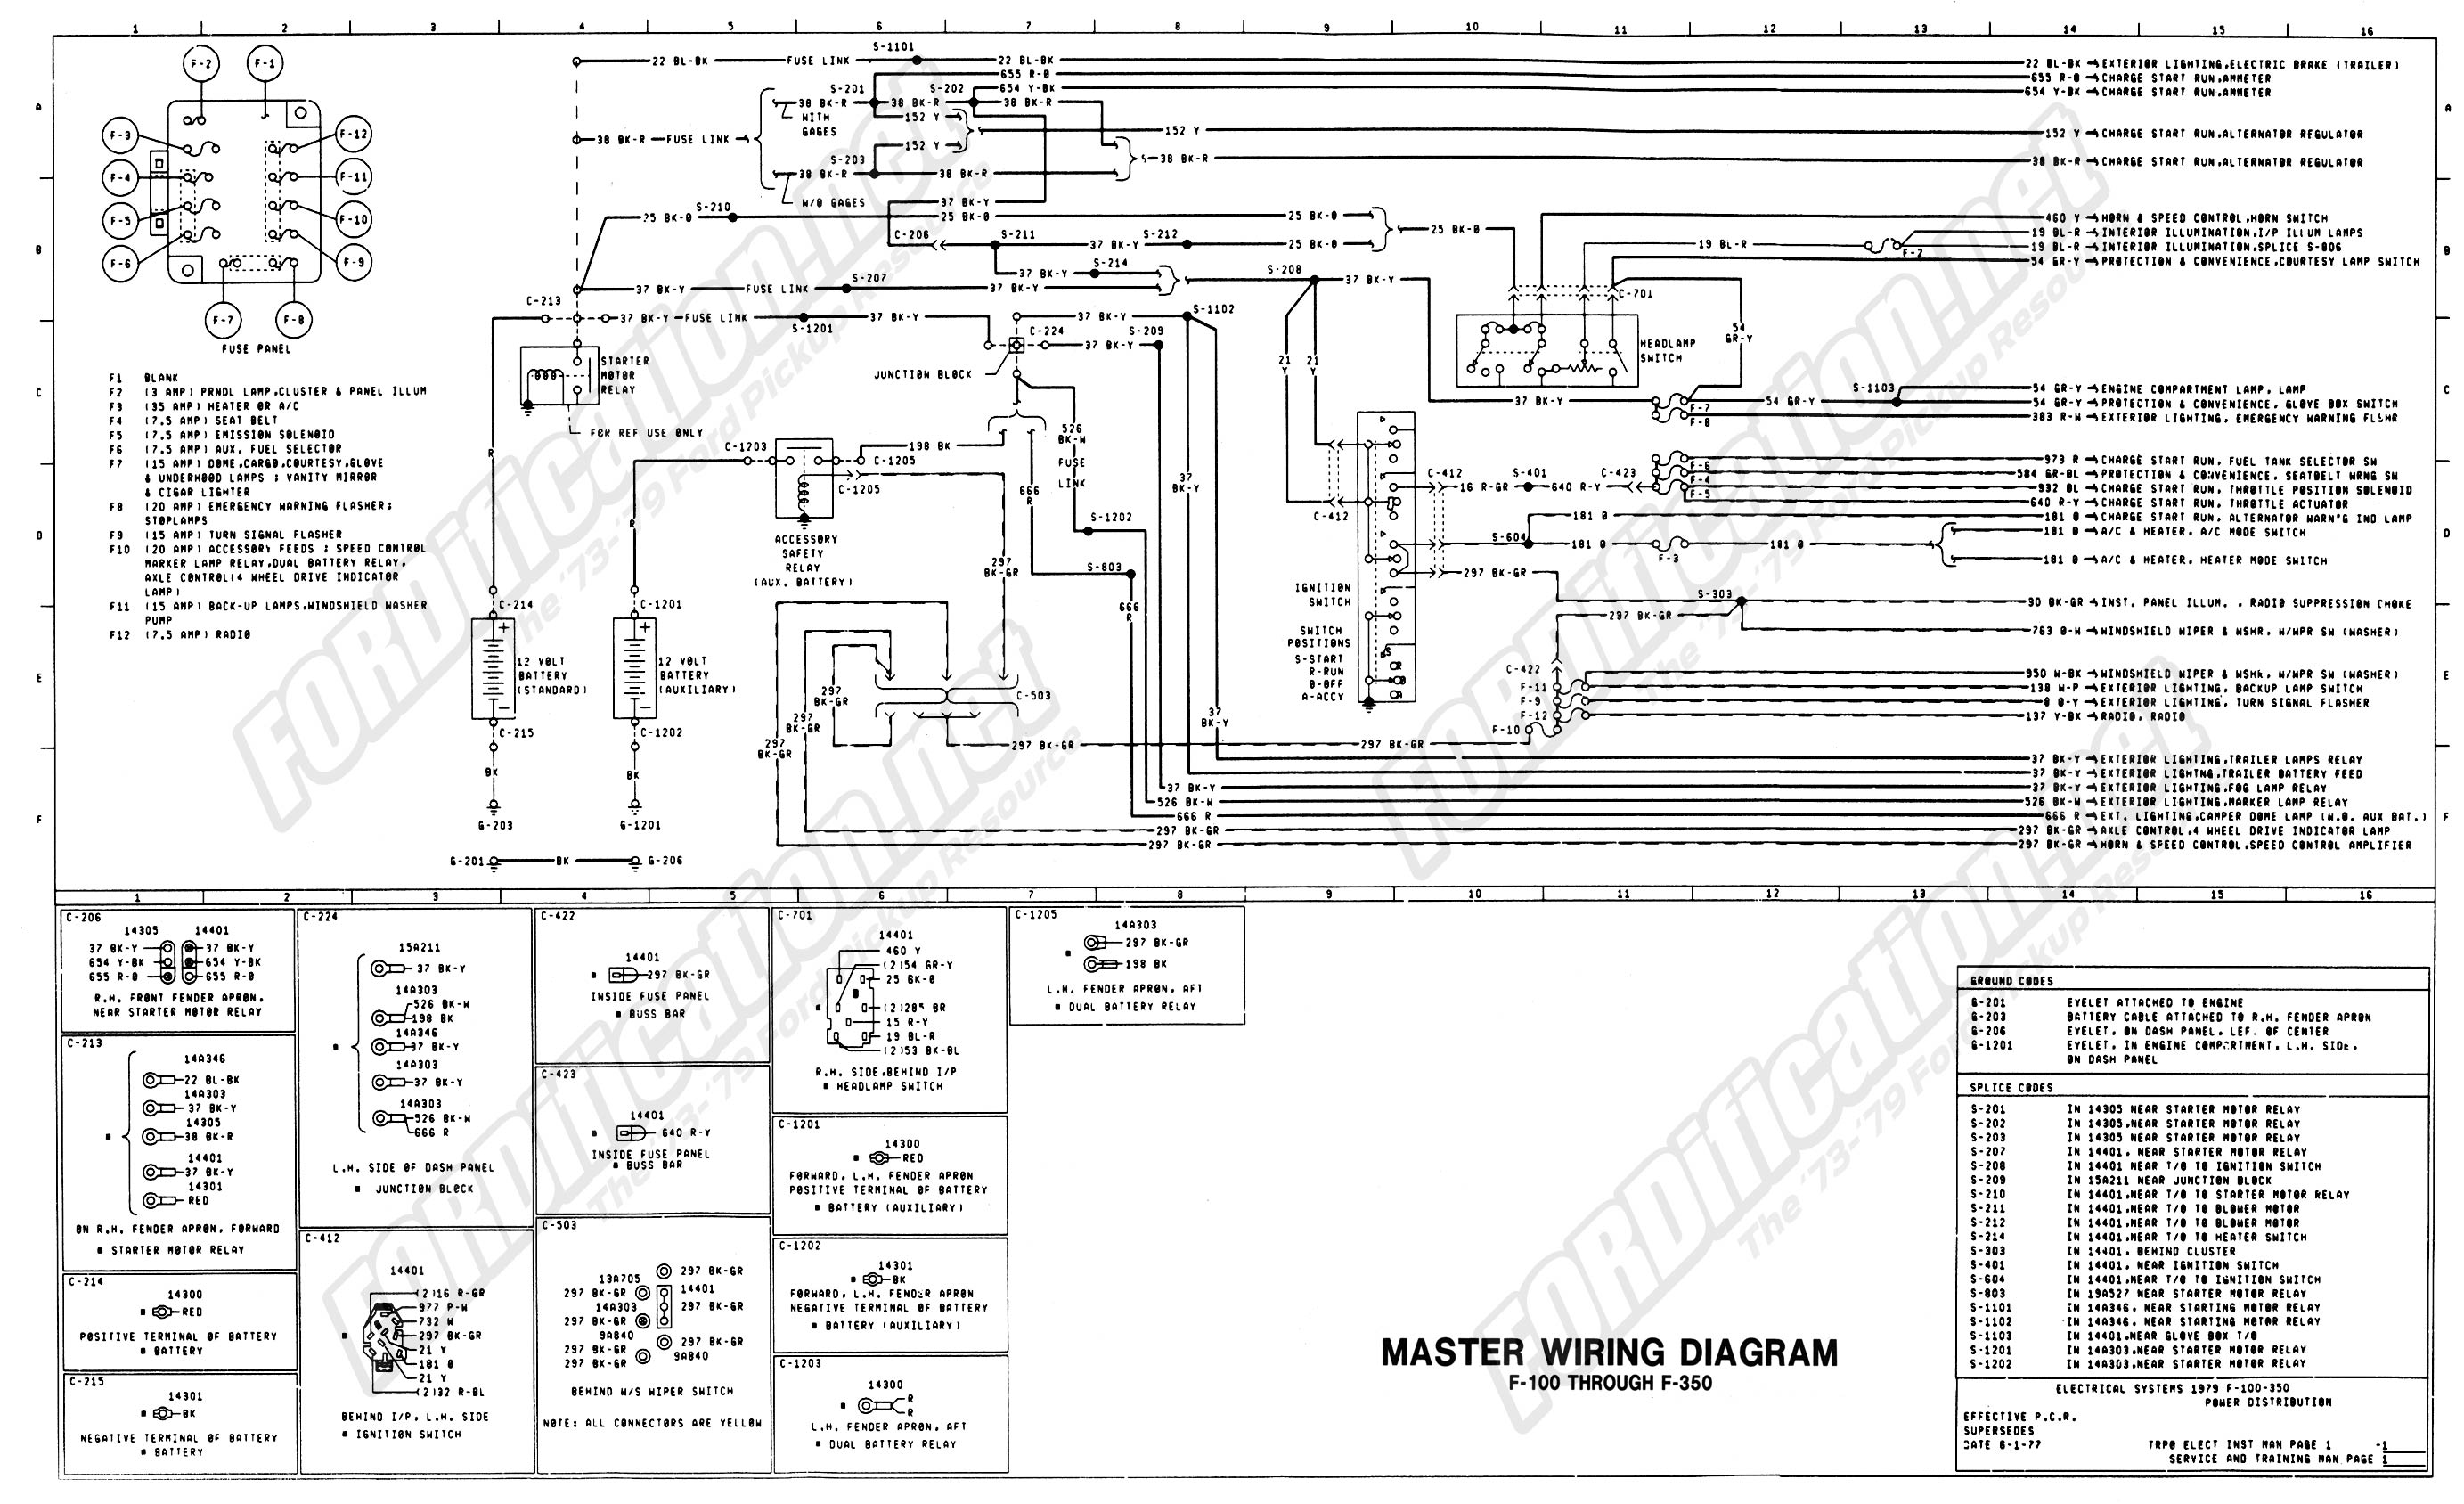 wiring_79master_1of9 1973 1979 ford truck wiring diagrams & schematics fordification net 2008 silverado ignition wiring diagram at bakdesigns.co